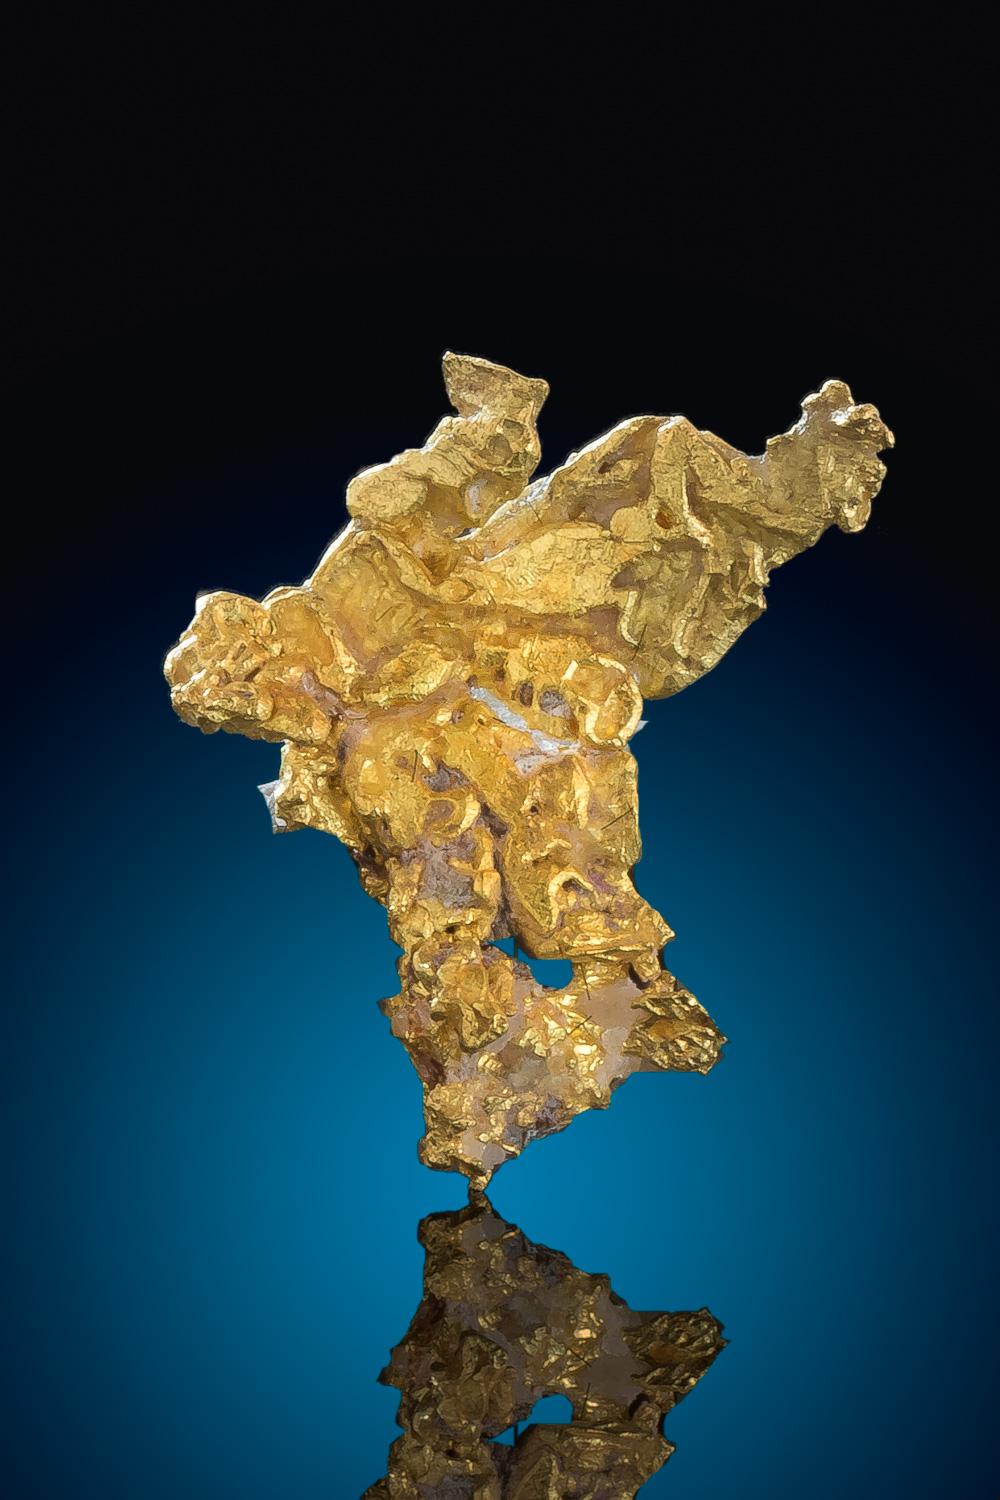 Beautiful Crystalline Gold Nugget from the Eagles Nest Mine